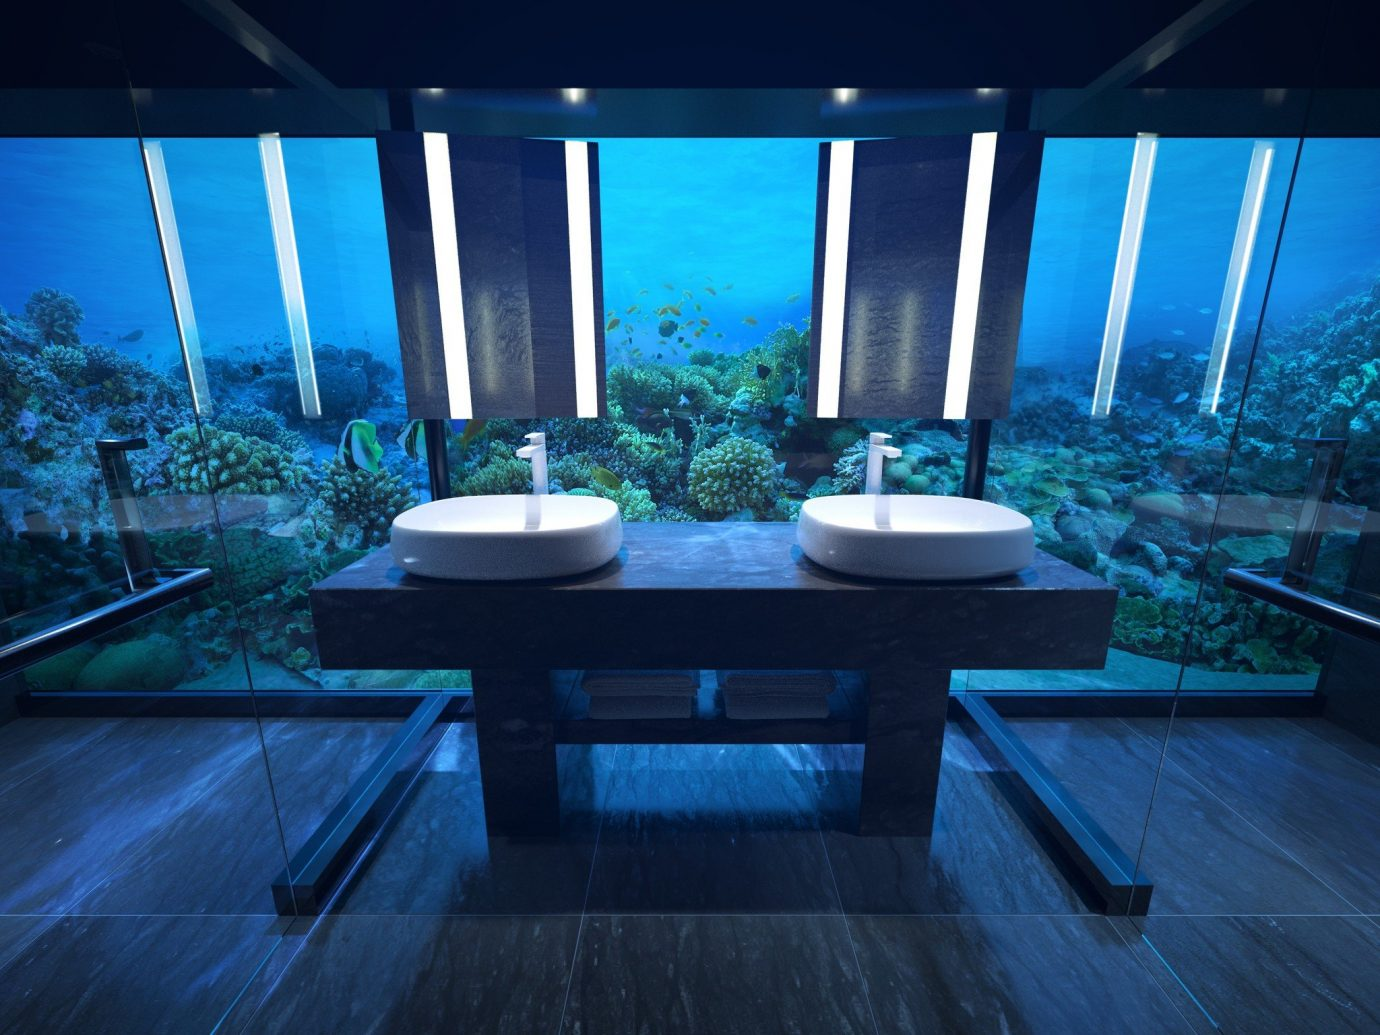 asia Beach Hotels Islands Maldives News Architecture lighting water interior design computer wallpaper swimming pool